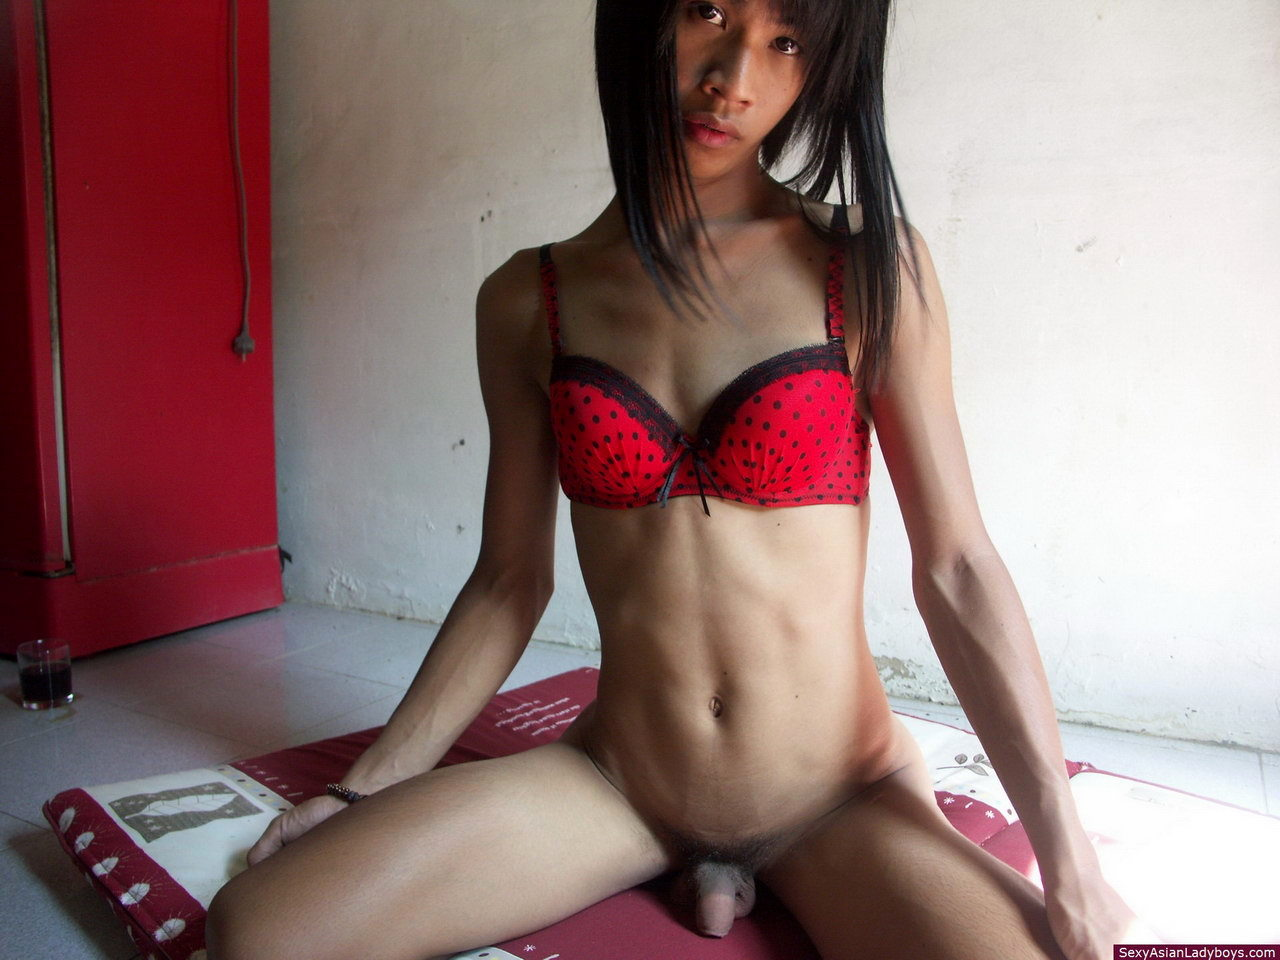 Enjoy Your Erotic Vacations With This Romantic Asian TGirl